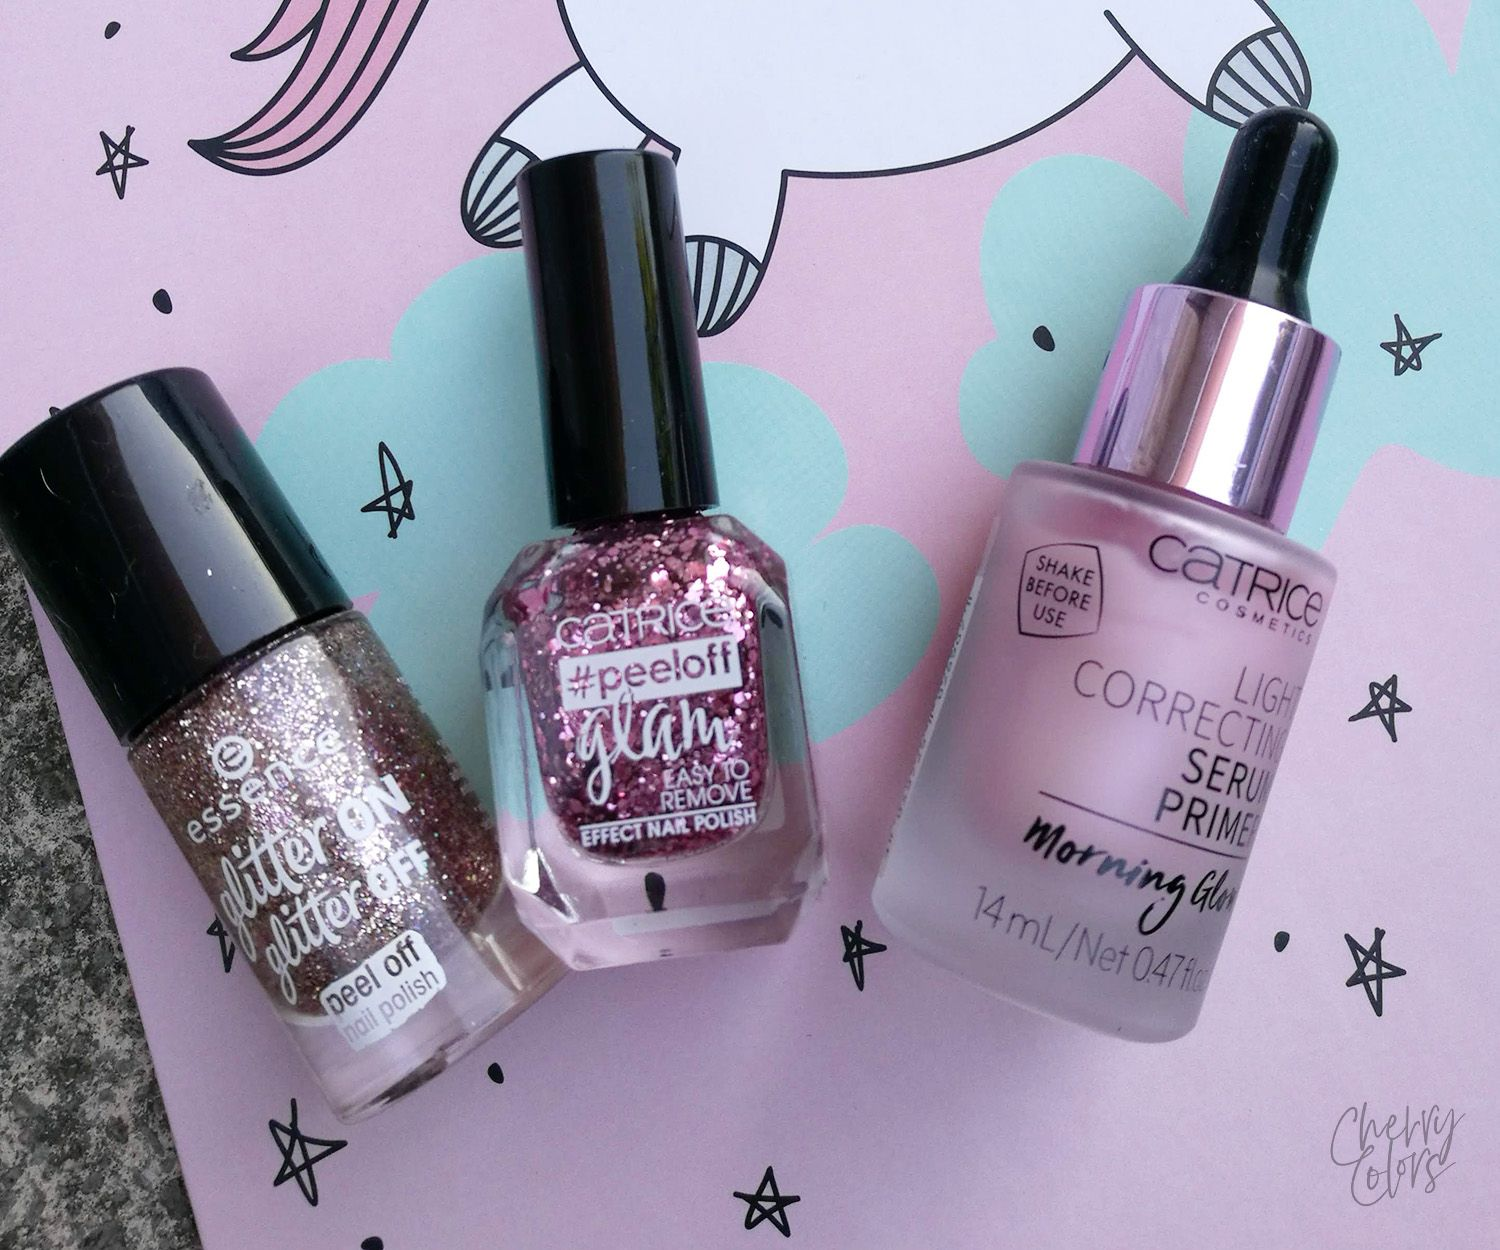 ESSENCE & CATRICE NEW PRODUCTS 2018 - UPDATE PT  2 | Reviews